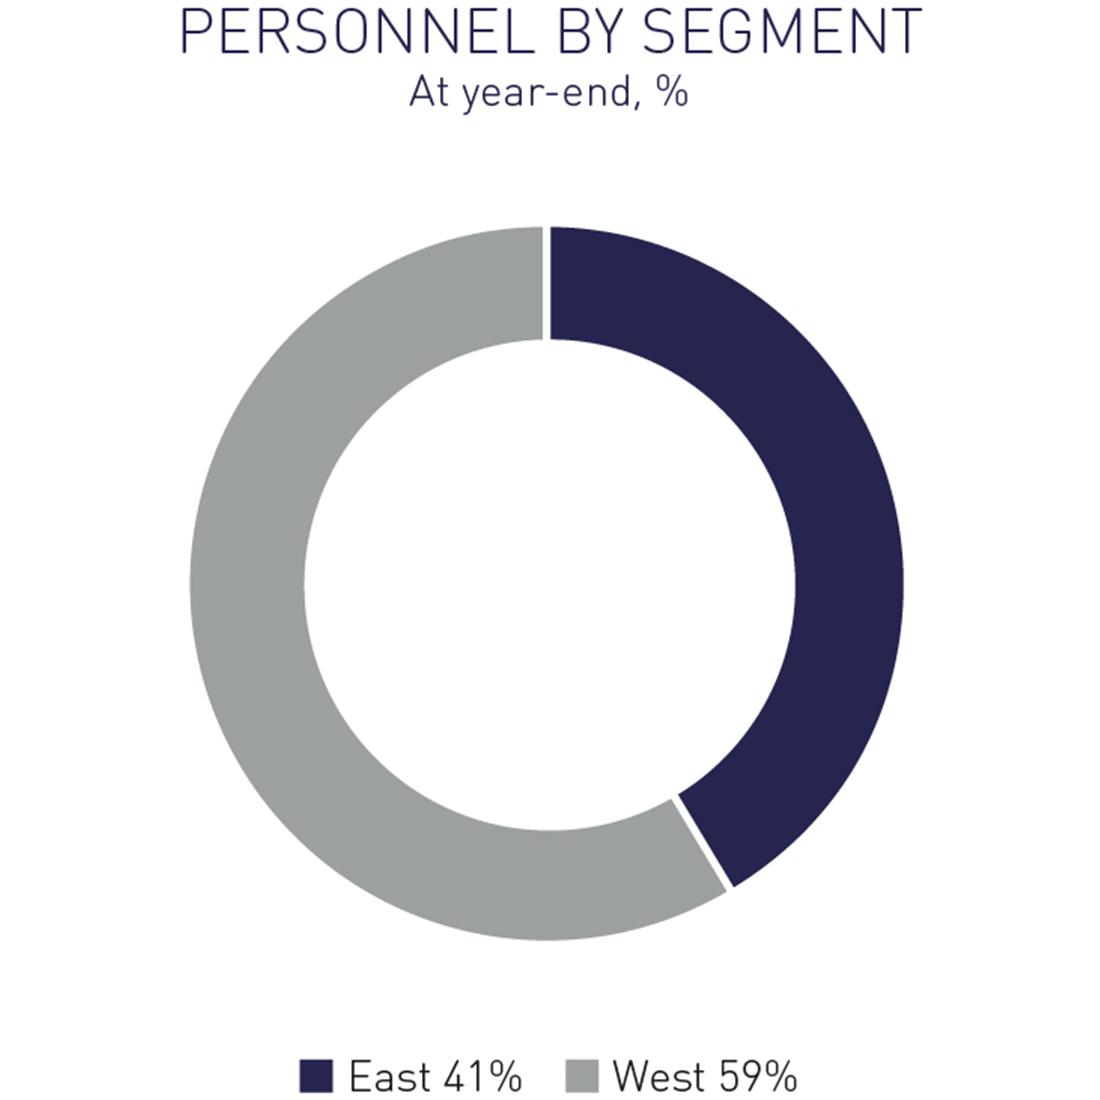 Personnel by segment